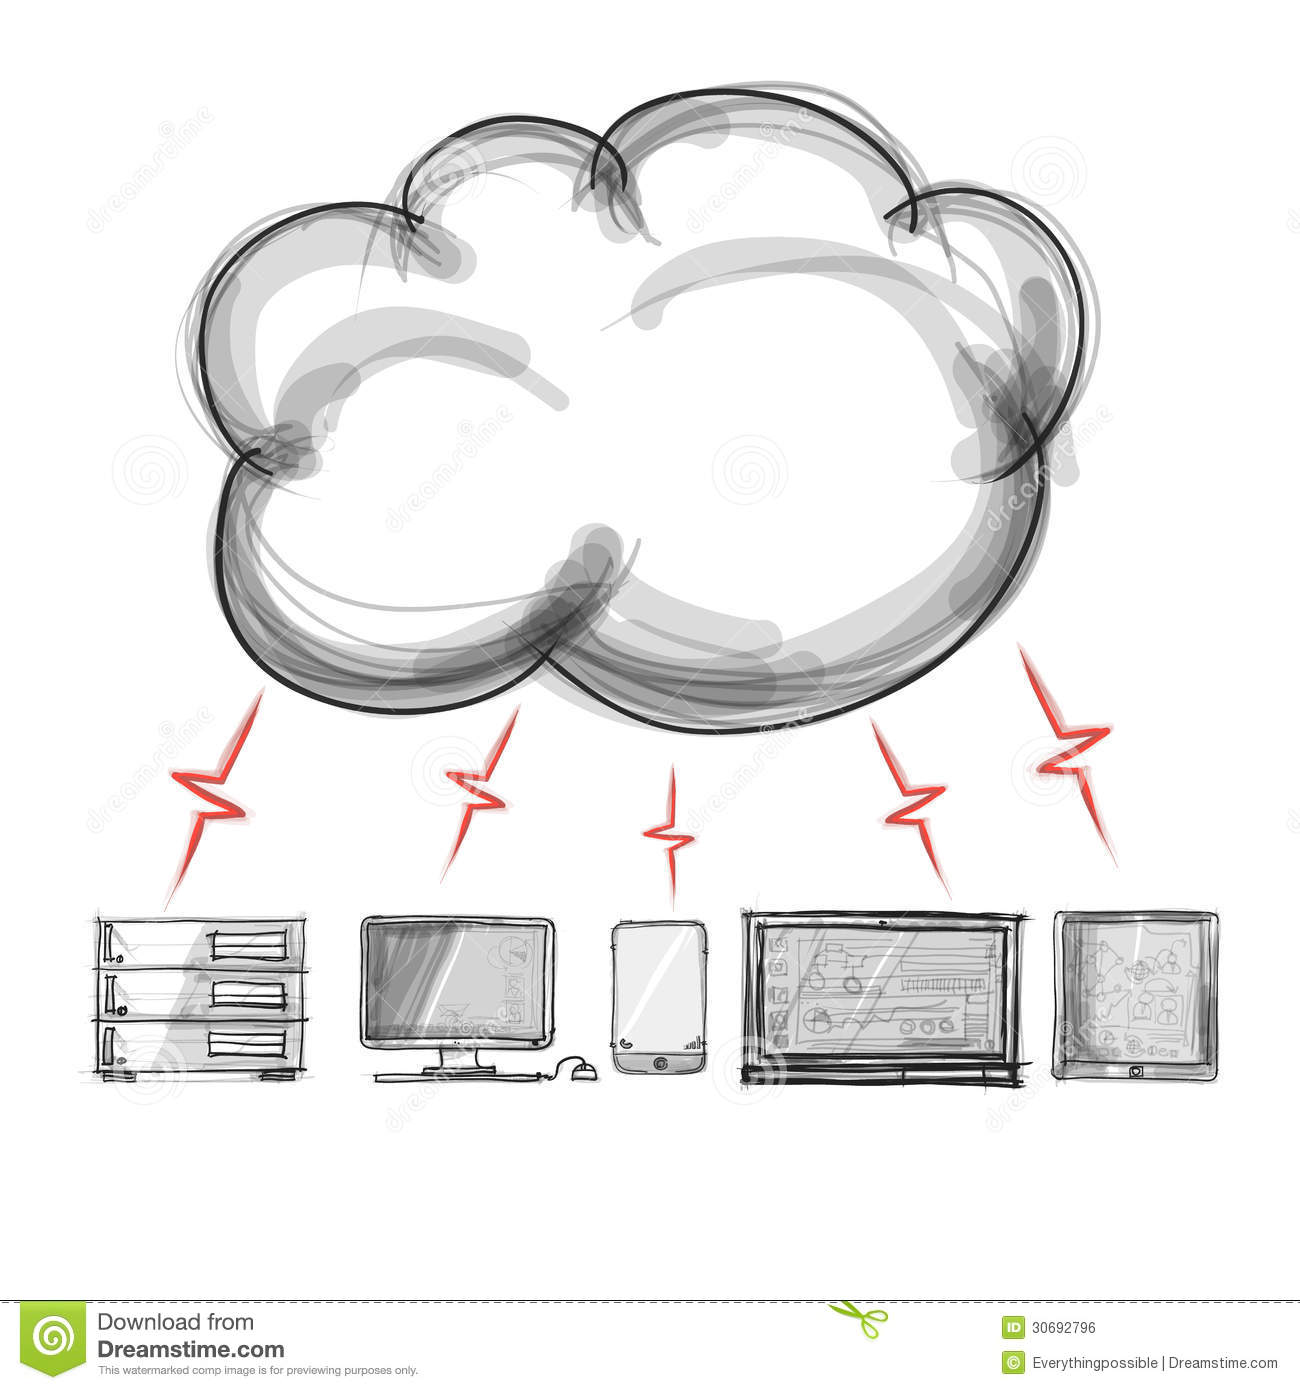 hight resolution of hand drawing a cloud computing diagram on the new computer interface